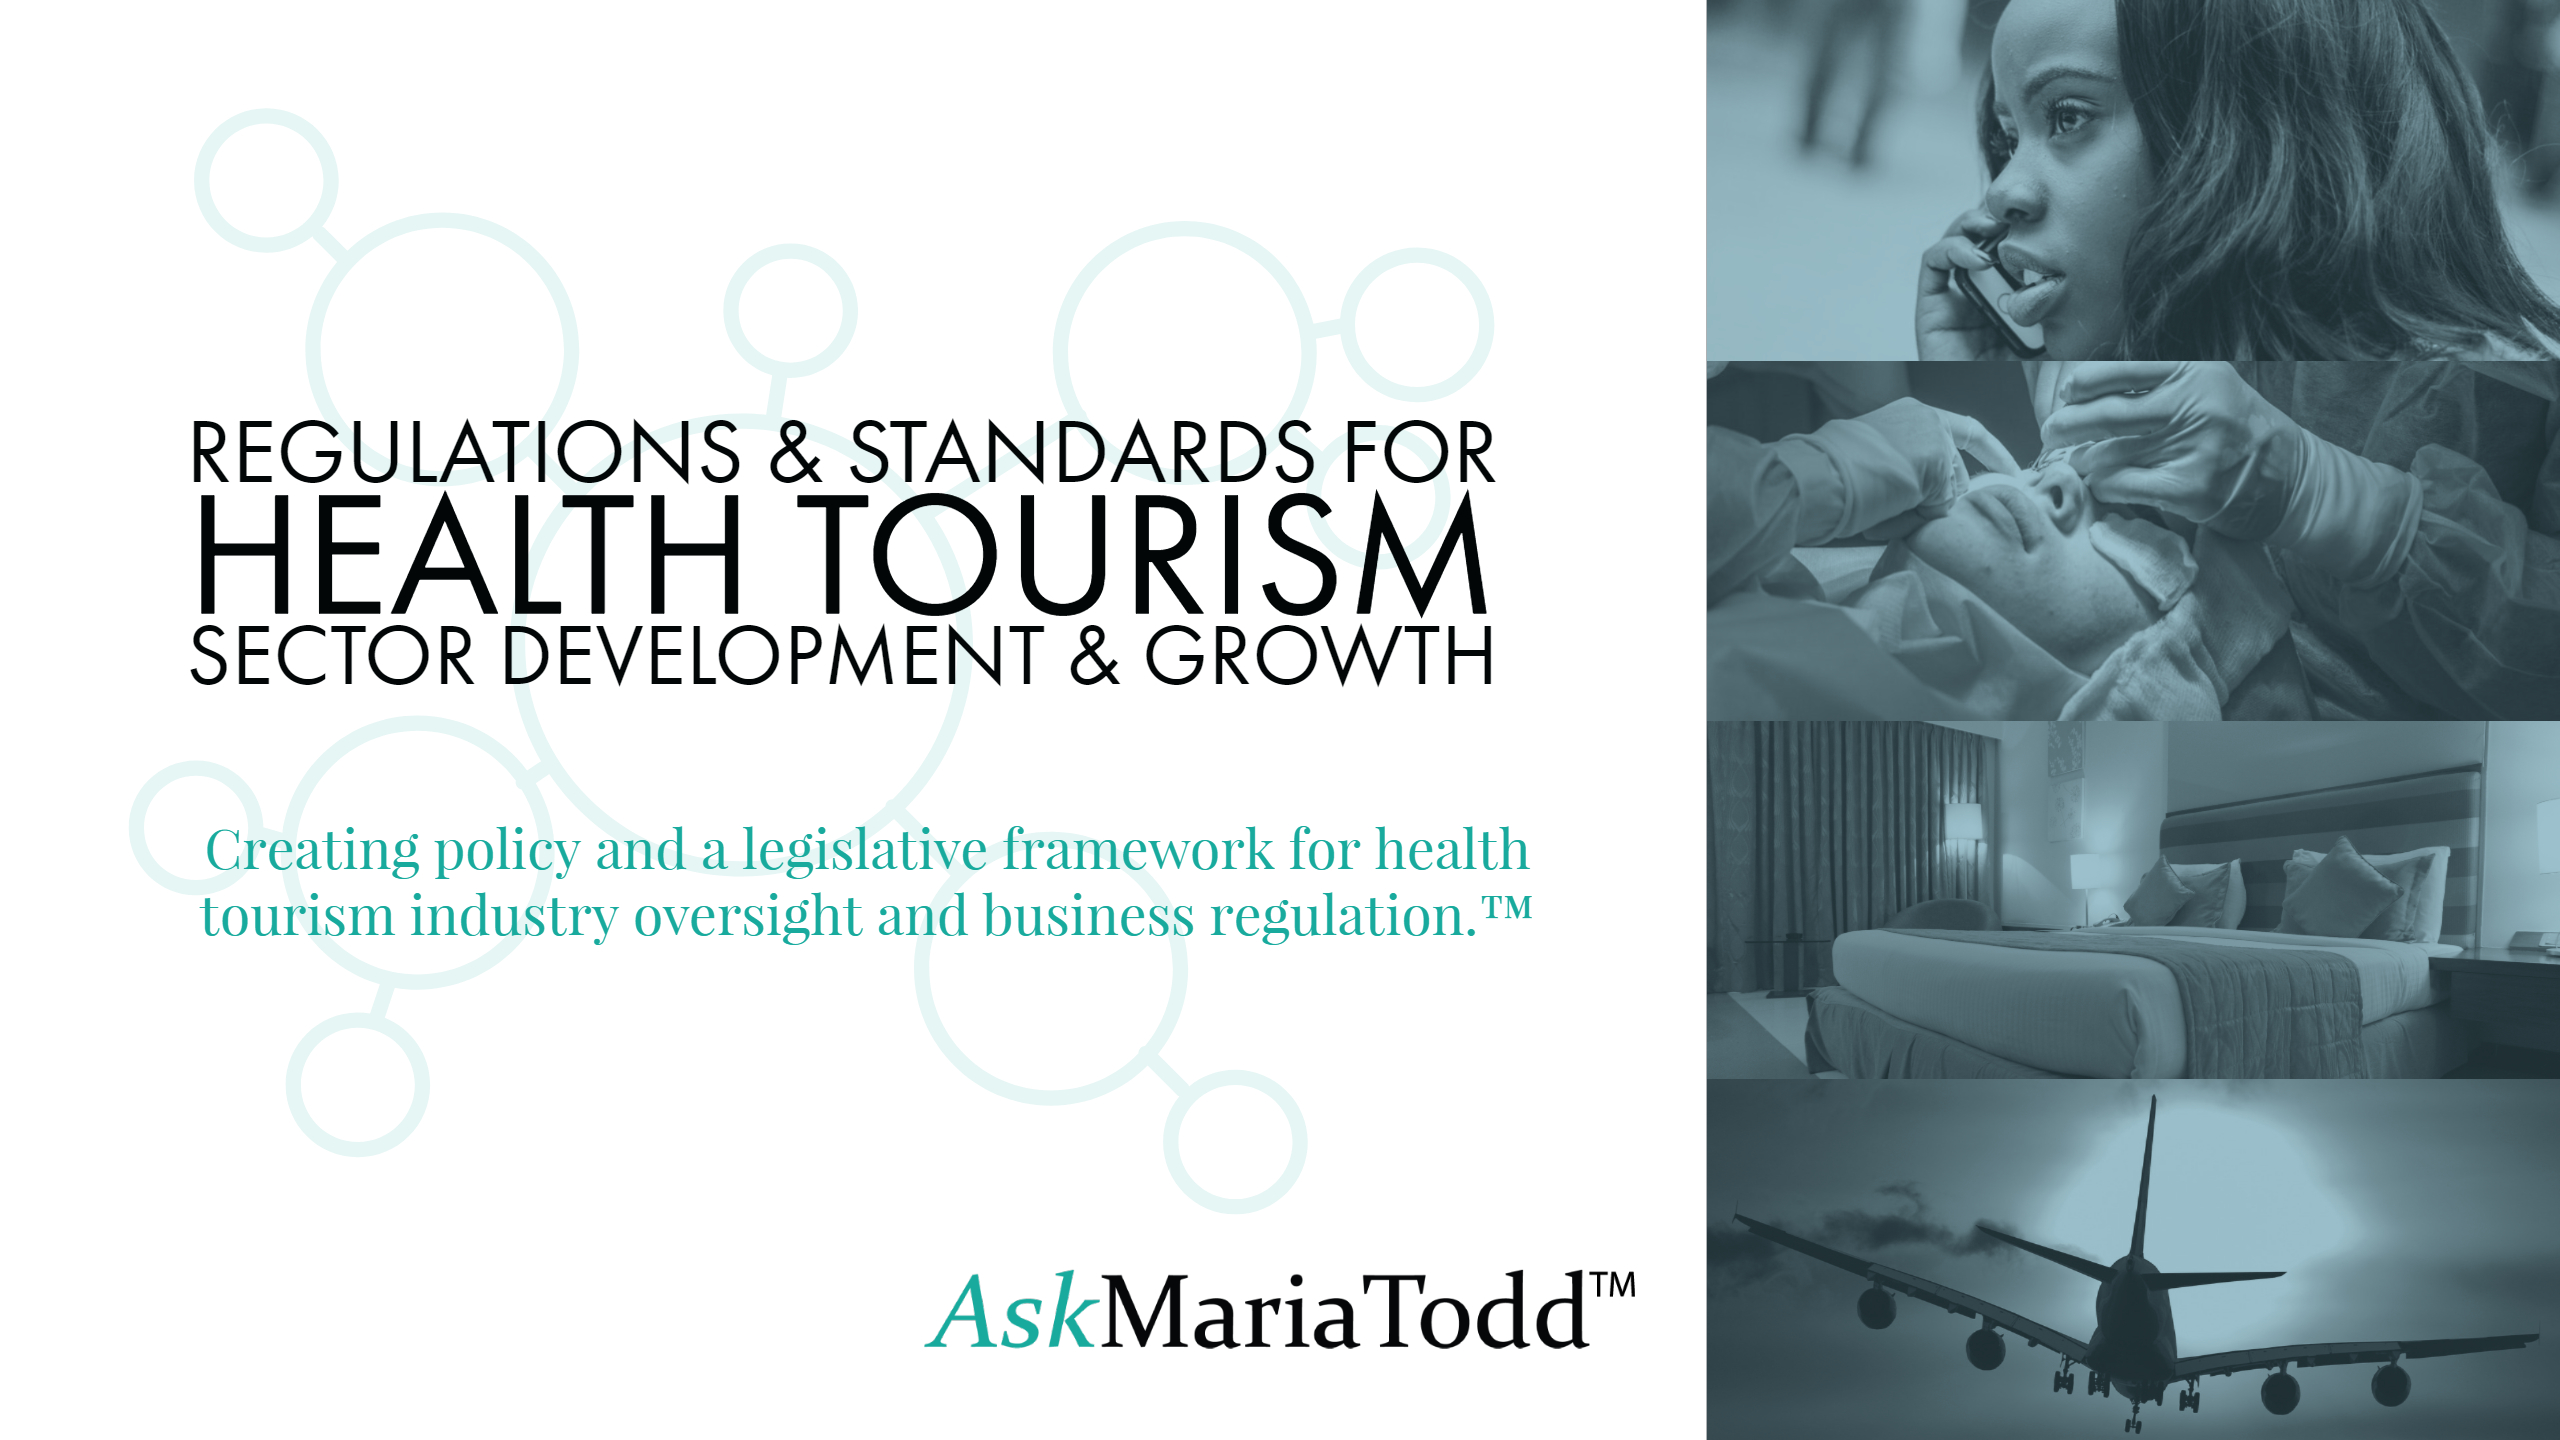 image of Regulations & Standards for Health Tourism Sector Development & Growth